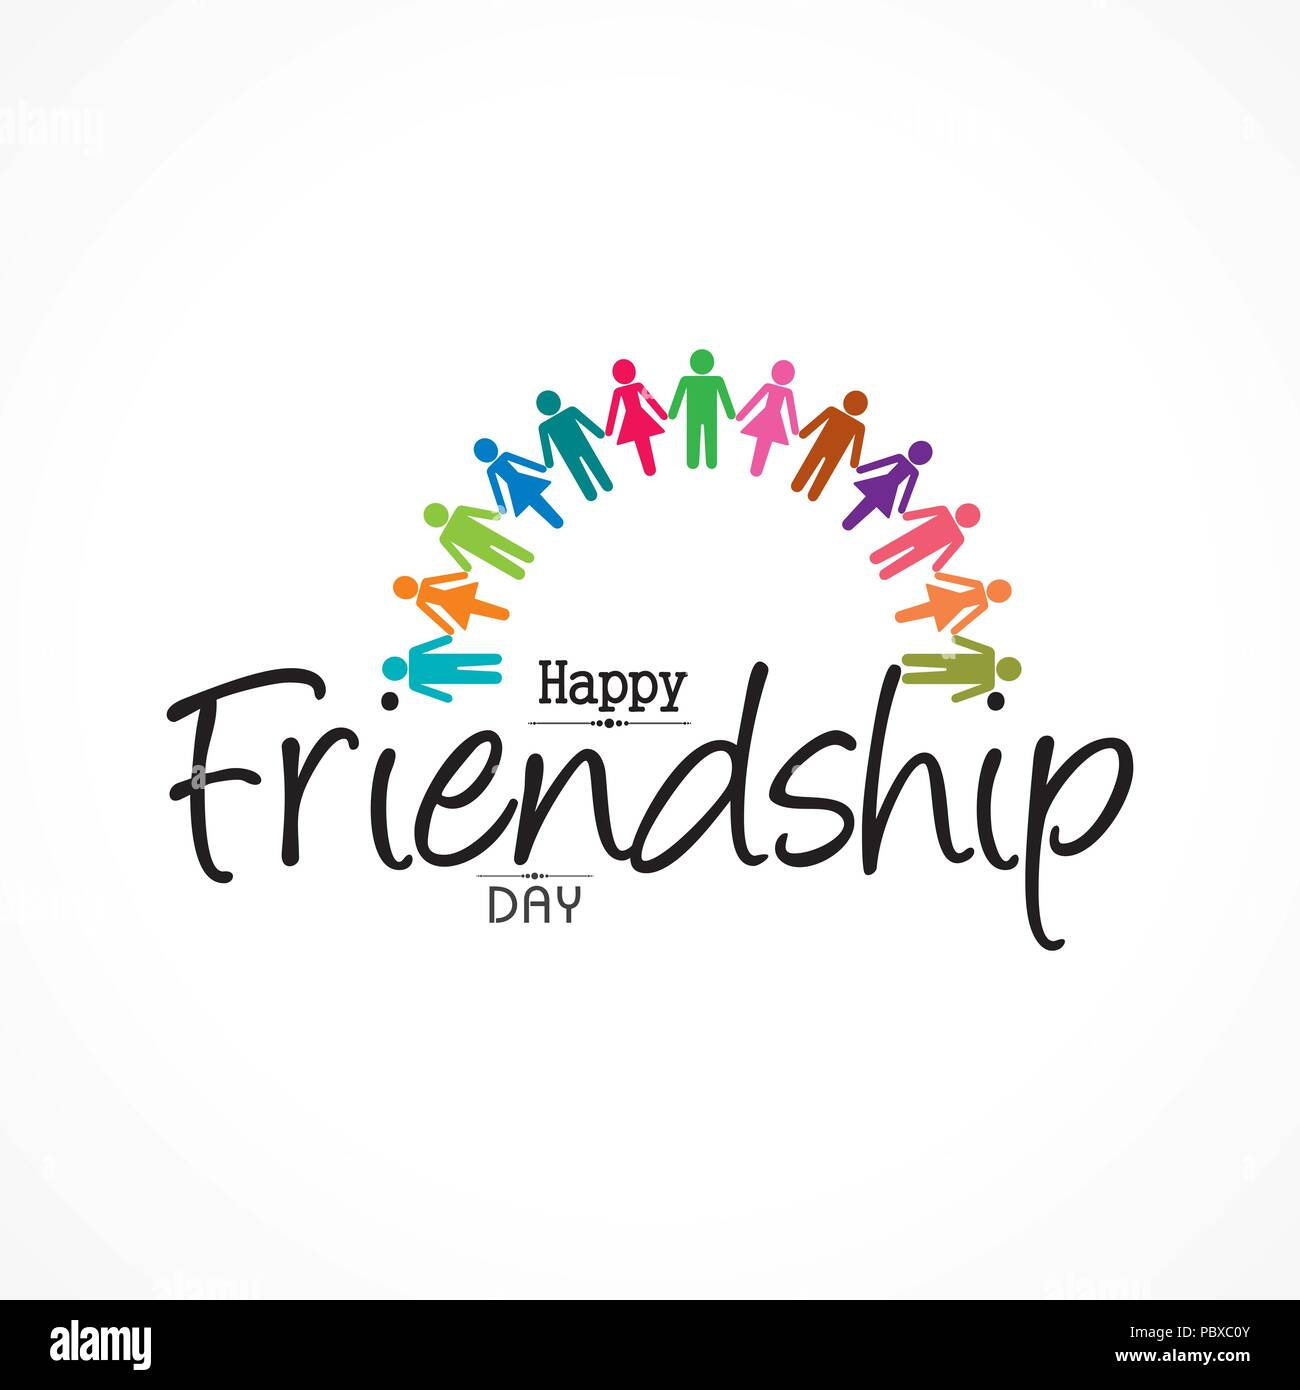 Happy friendship day vector typographic design usable as greeting happy friendship day vector typographic design usable as greeting cards posters clothing t shirt for your friends m4hsunfo